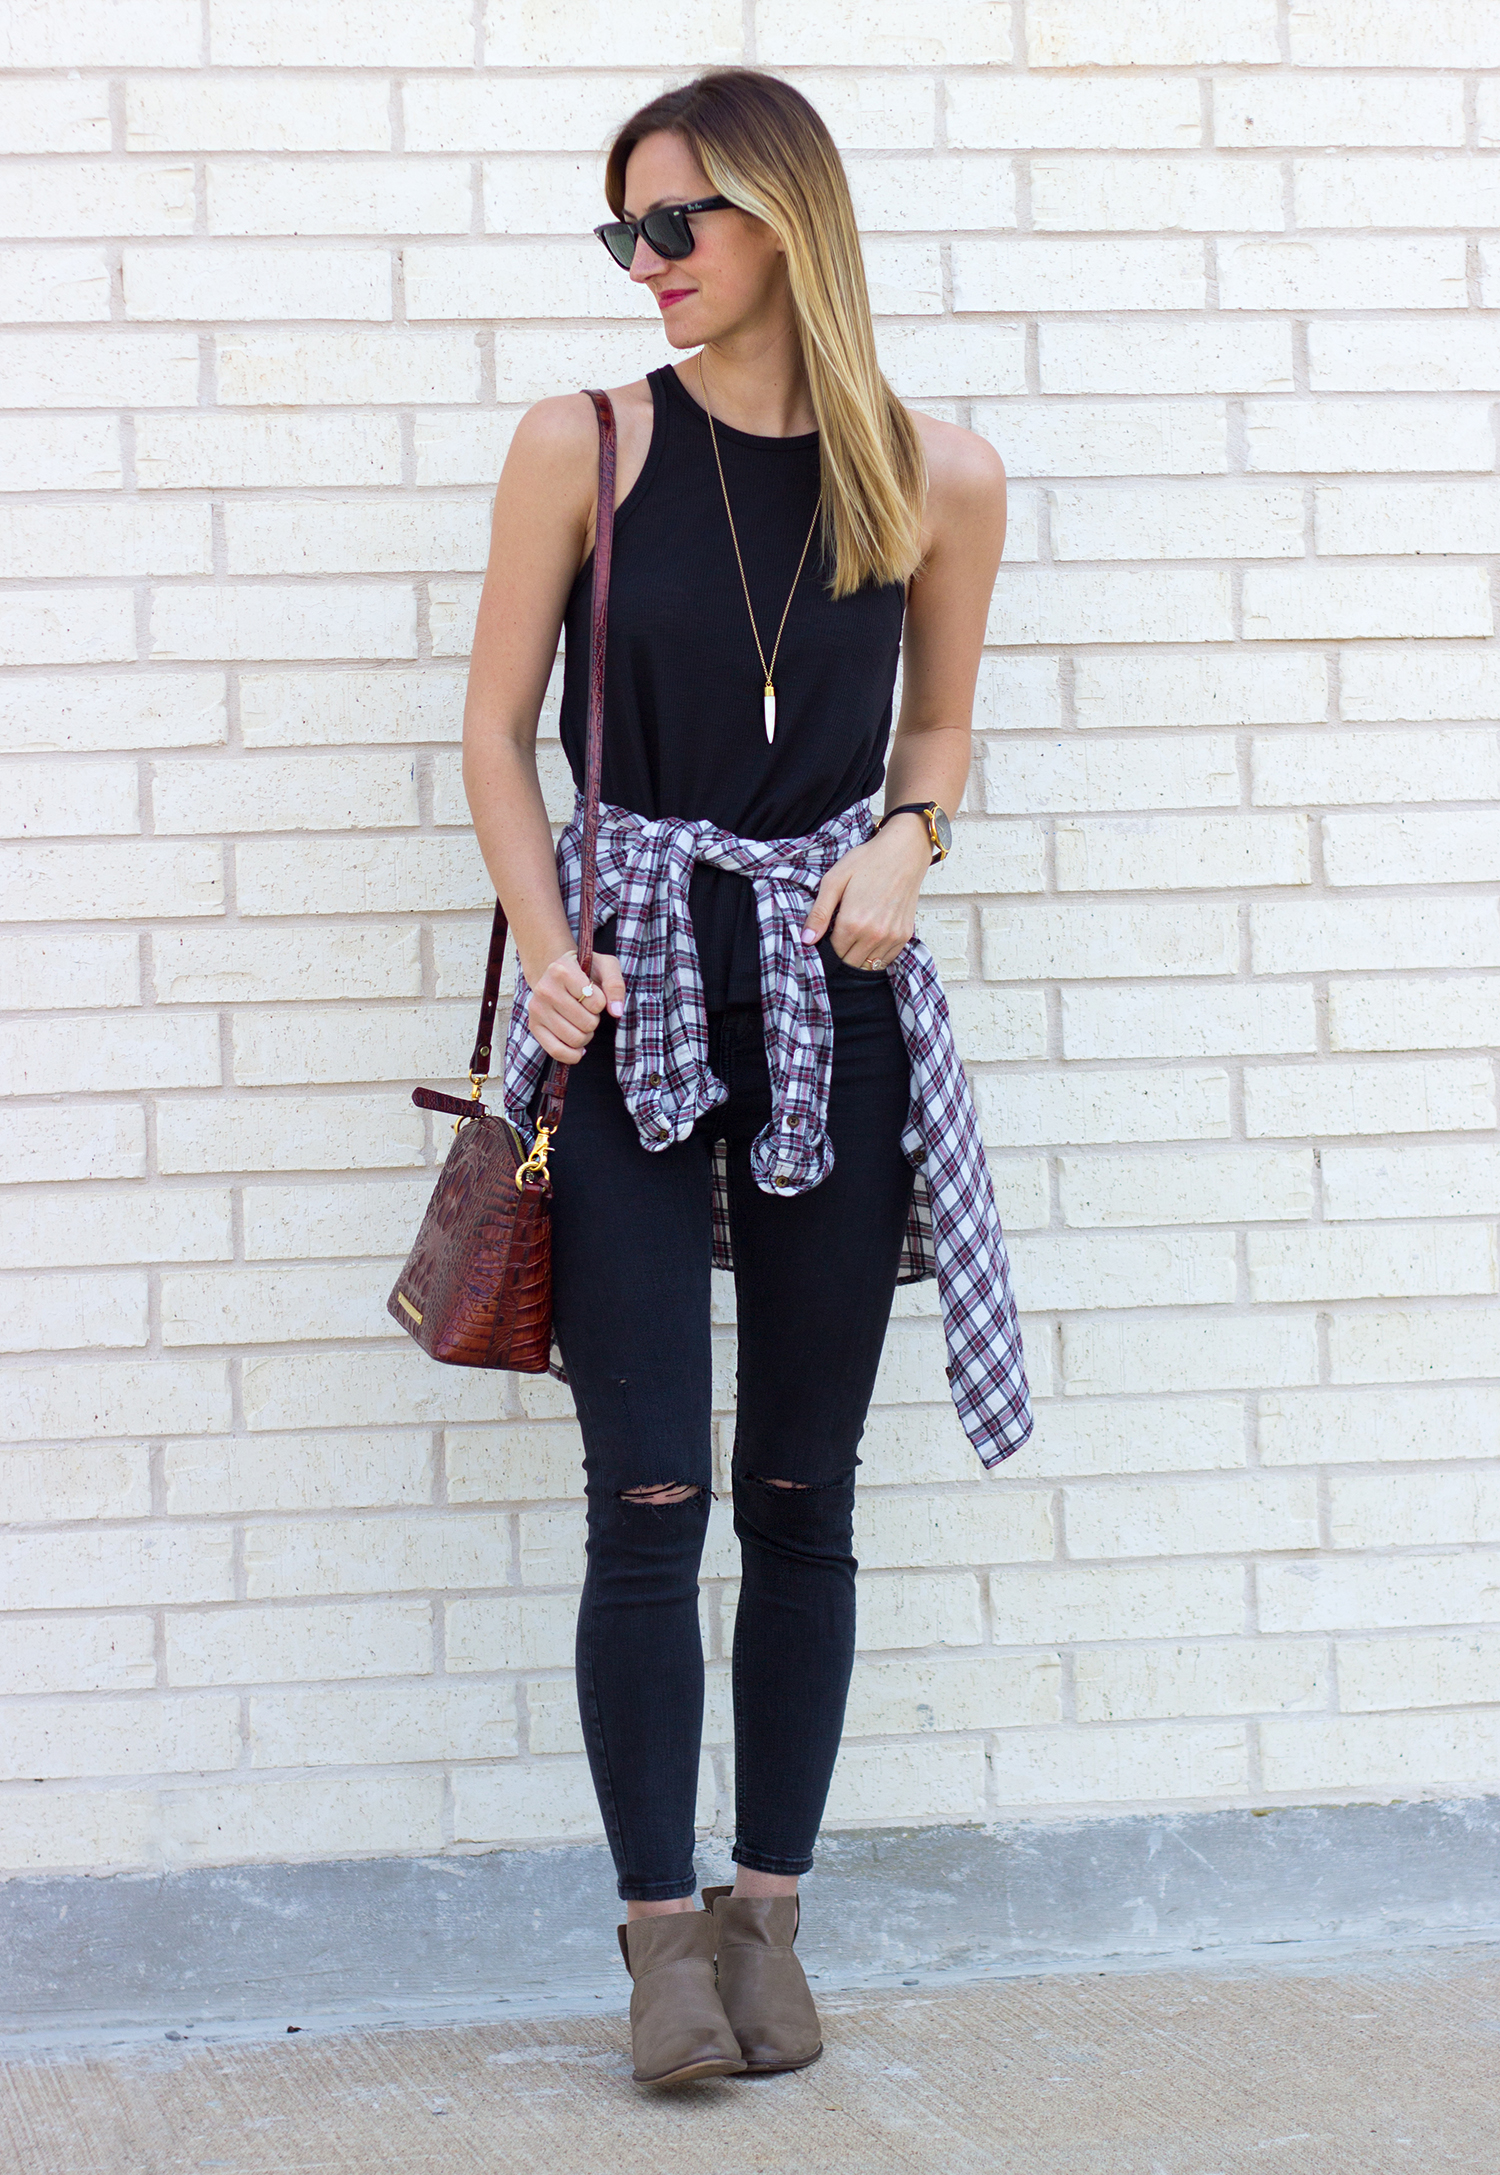 Best Outfit: SXSW Festival Outfit Inspiration - LivvyLand